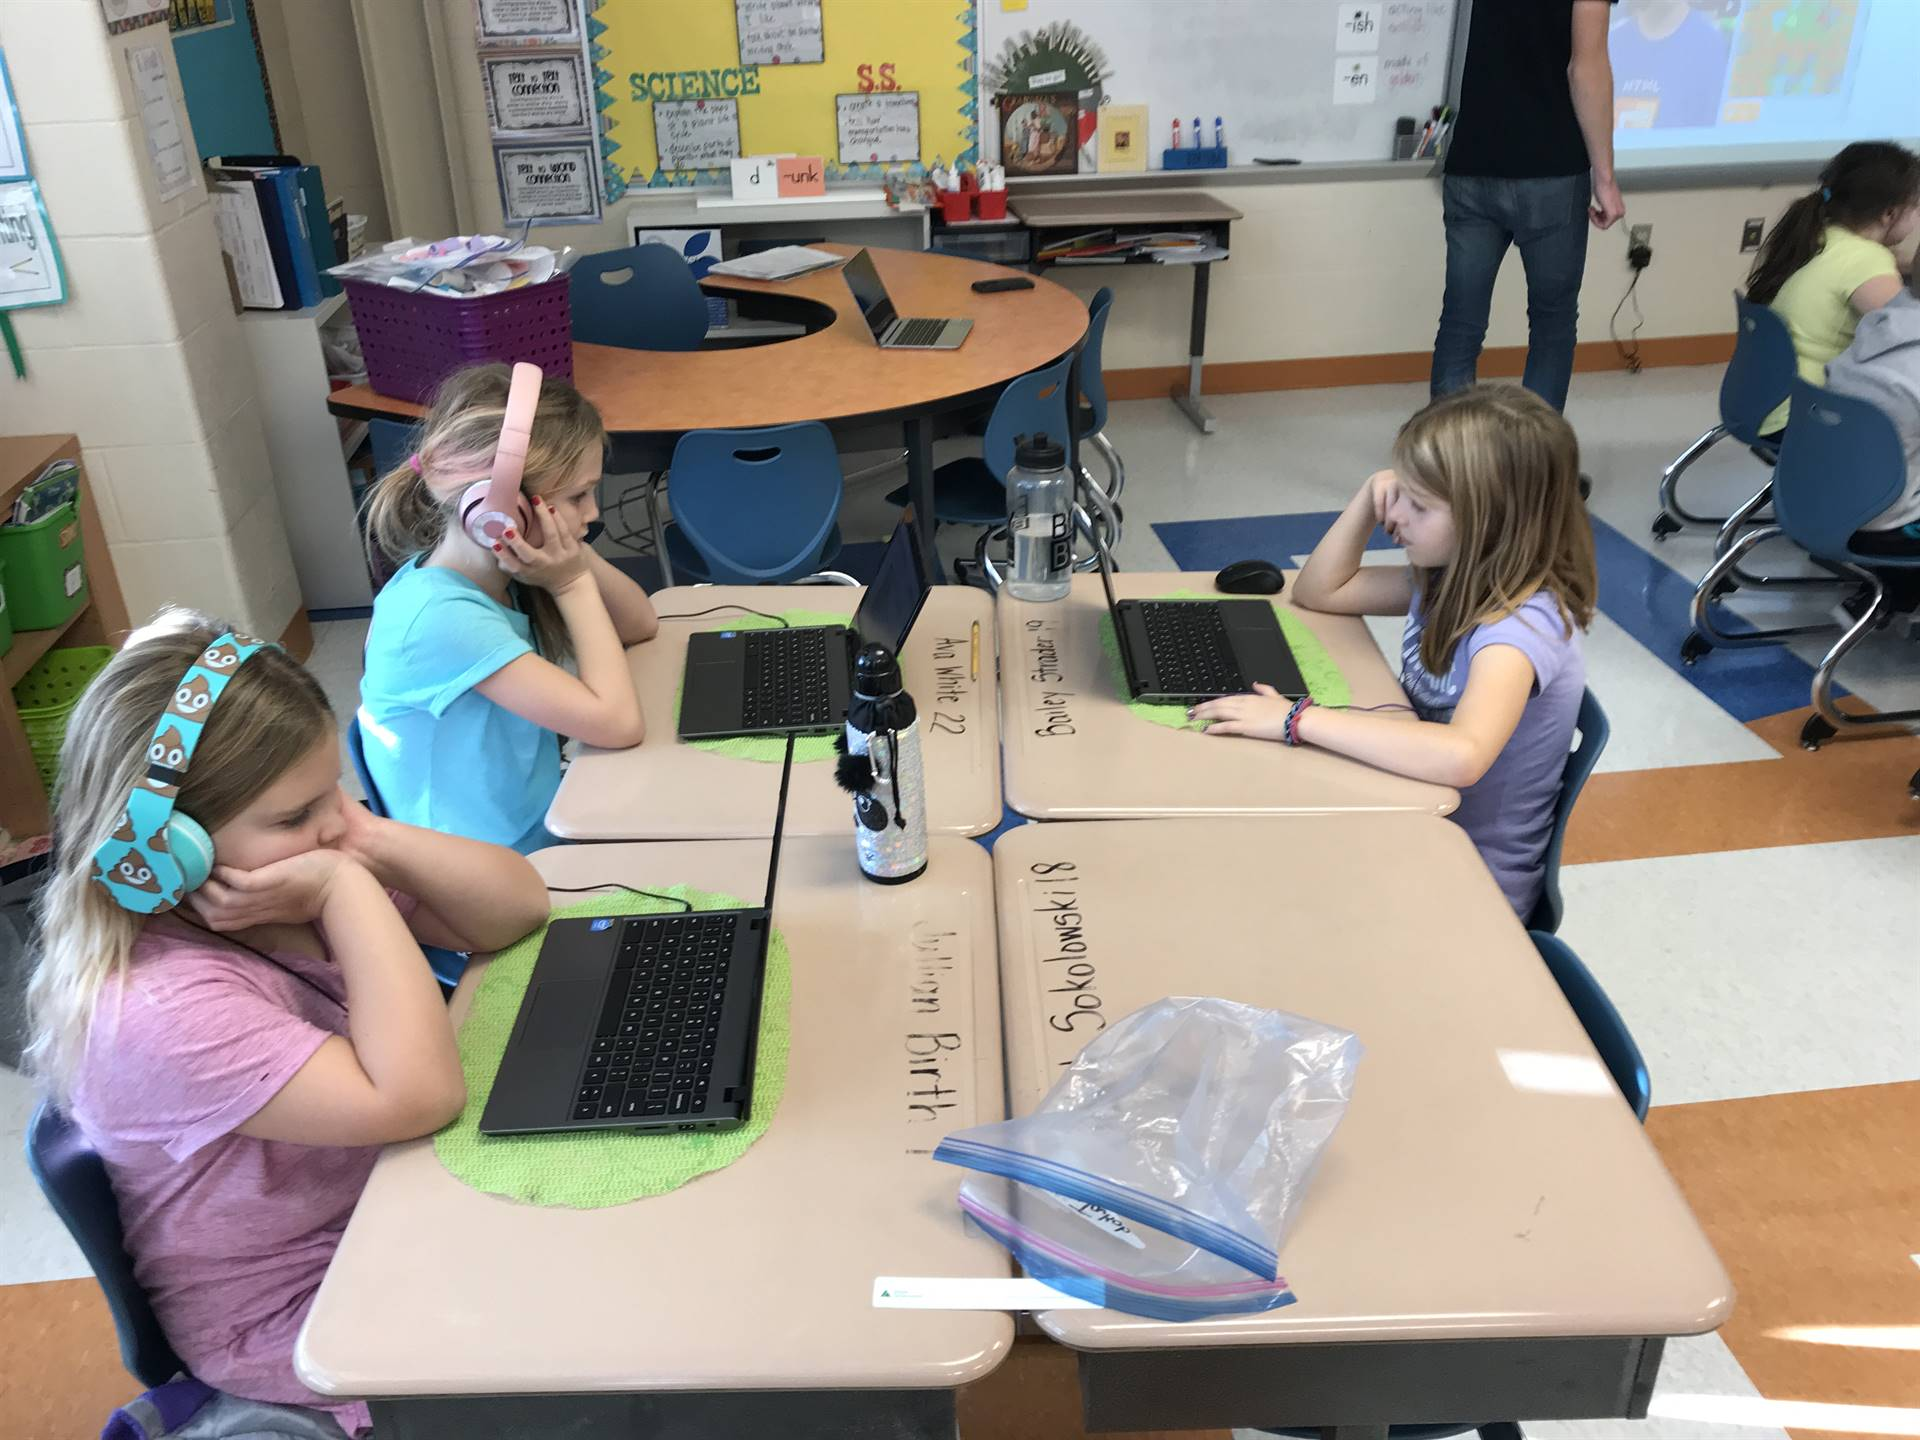 Students learn coding through games and other activities.